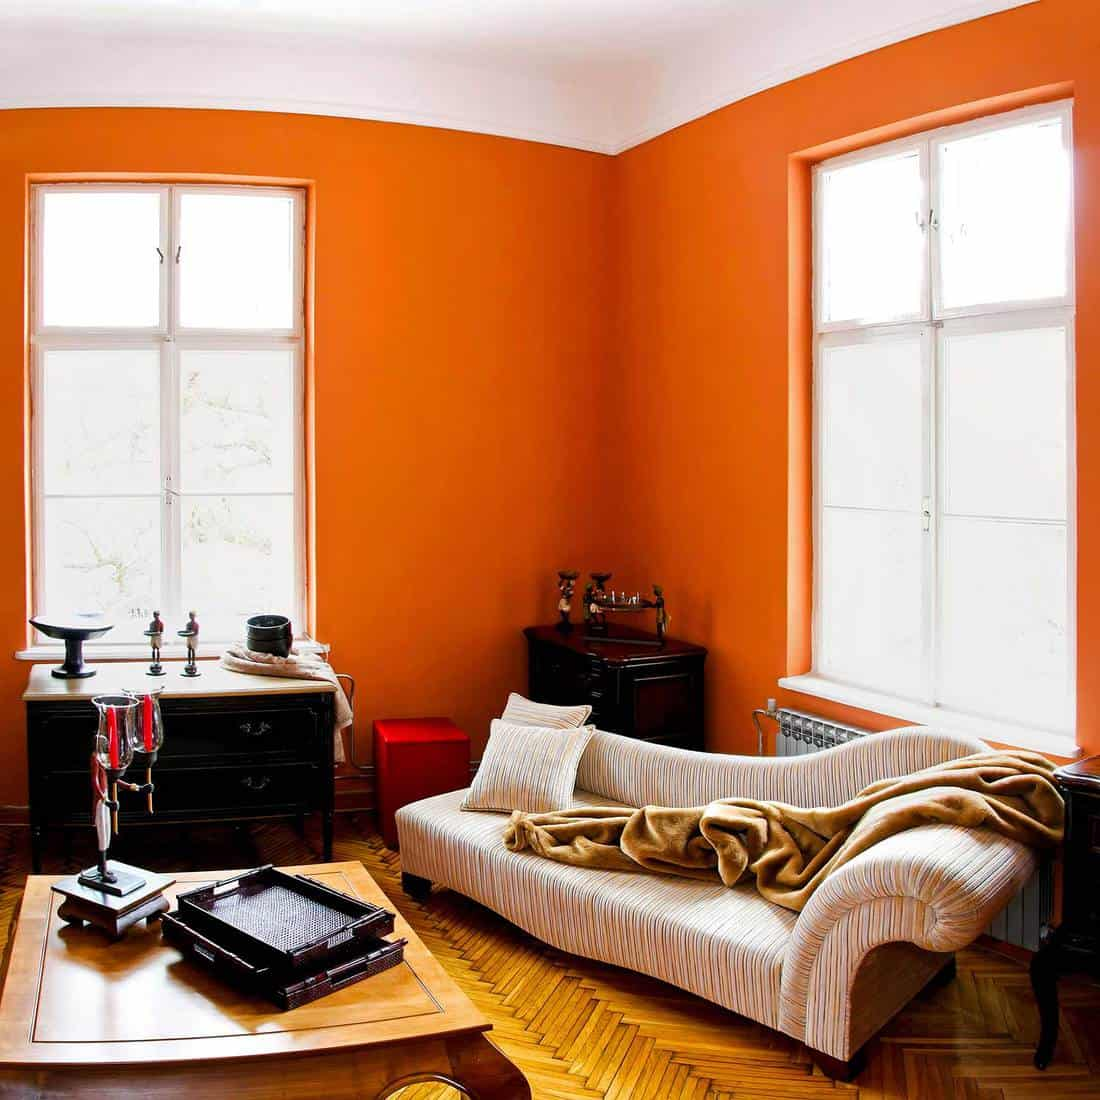 Orange room living room with parquet floor, sofa and wooden coffee table